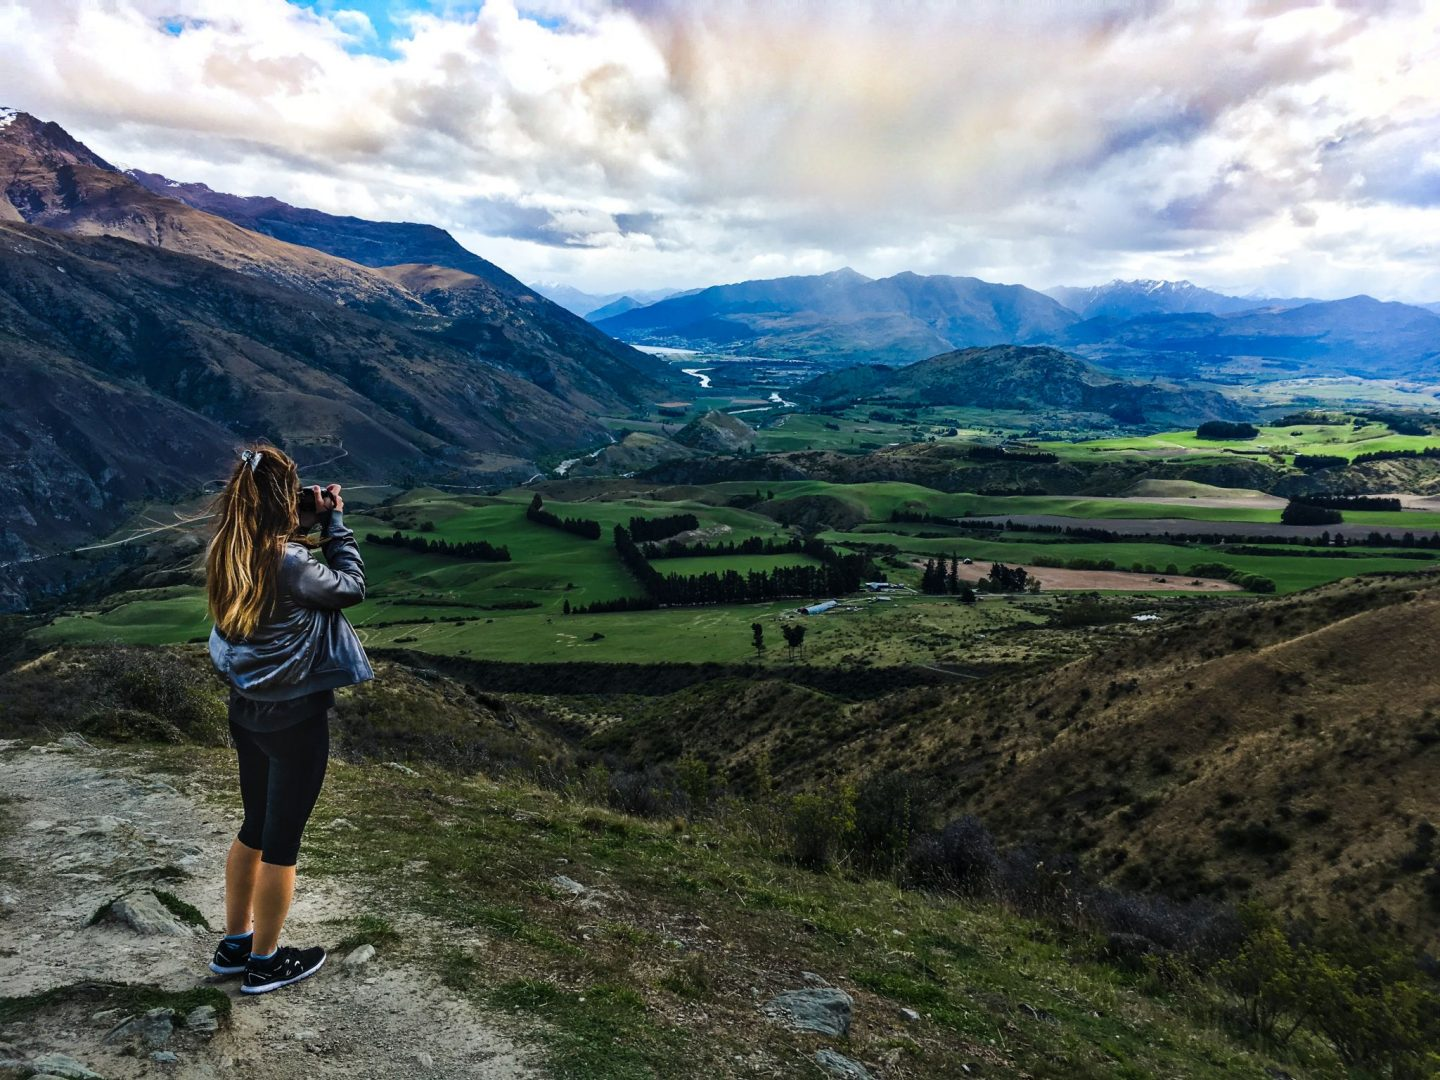 Reasons to Explore New Zealand with Wild Kiwi